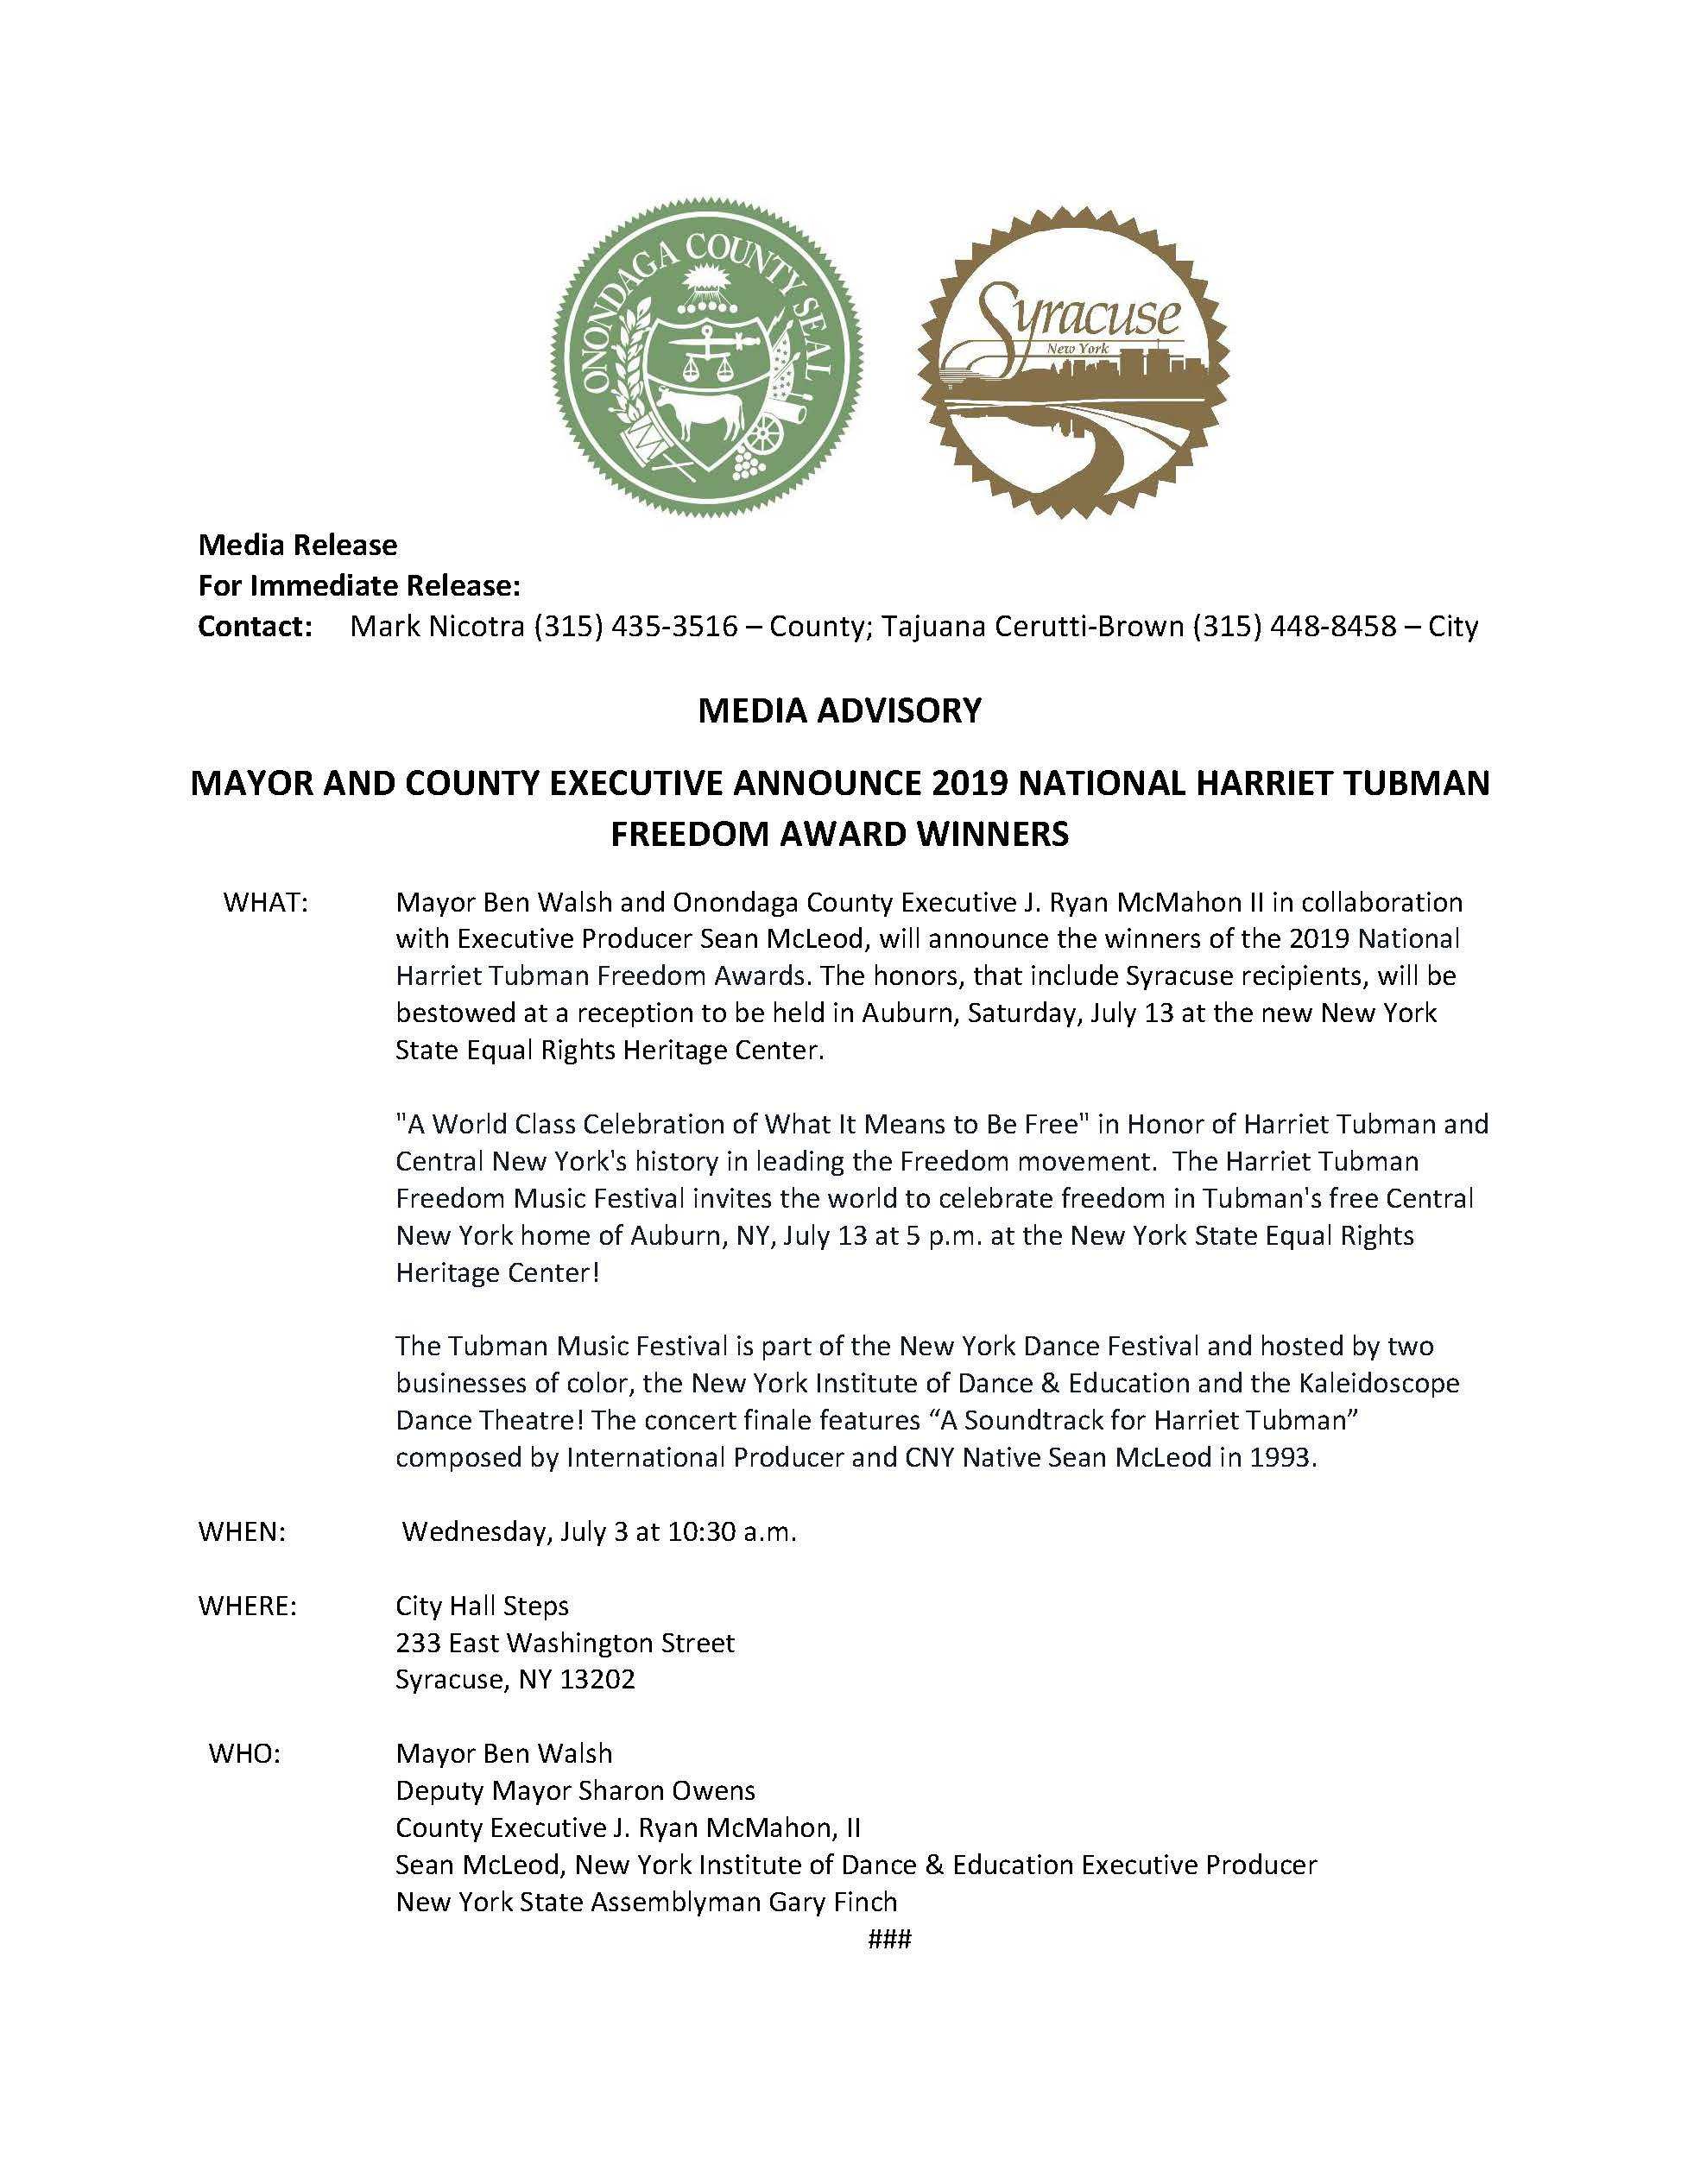 2019 07 02 MEDIA ADVISORY Mayor and County Executive Annouce 2019 National Harriet Tubman Freedom Award Winners.jpg